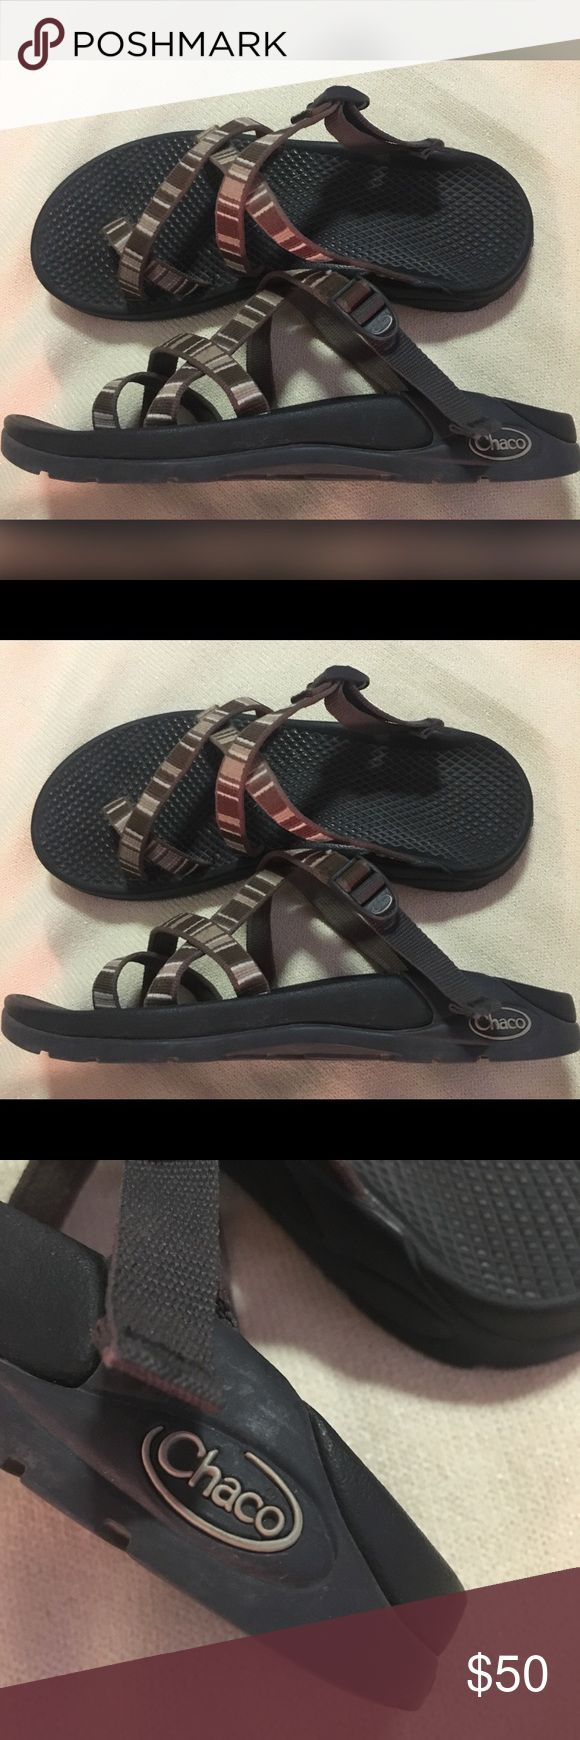 Chaco Brown and tan women's 7 Chaco tan and brown stripe shoe sz 7 Chaco Shoes Sandals